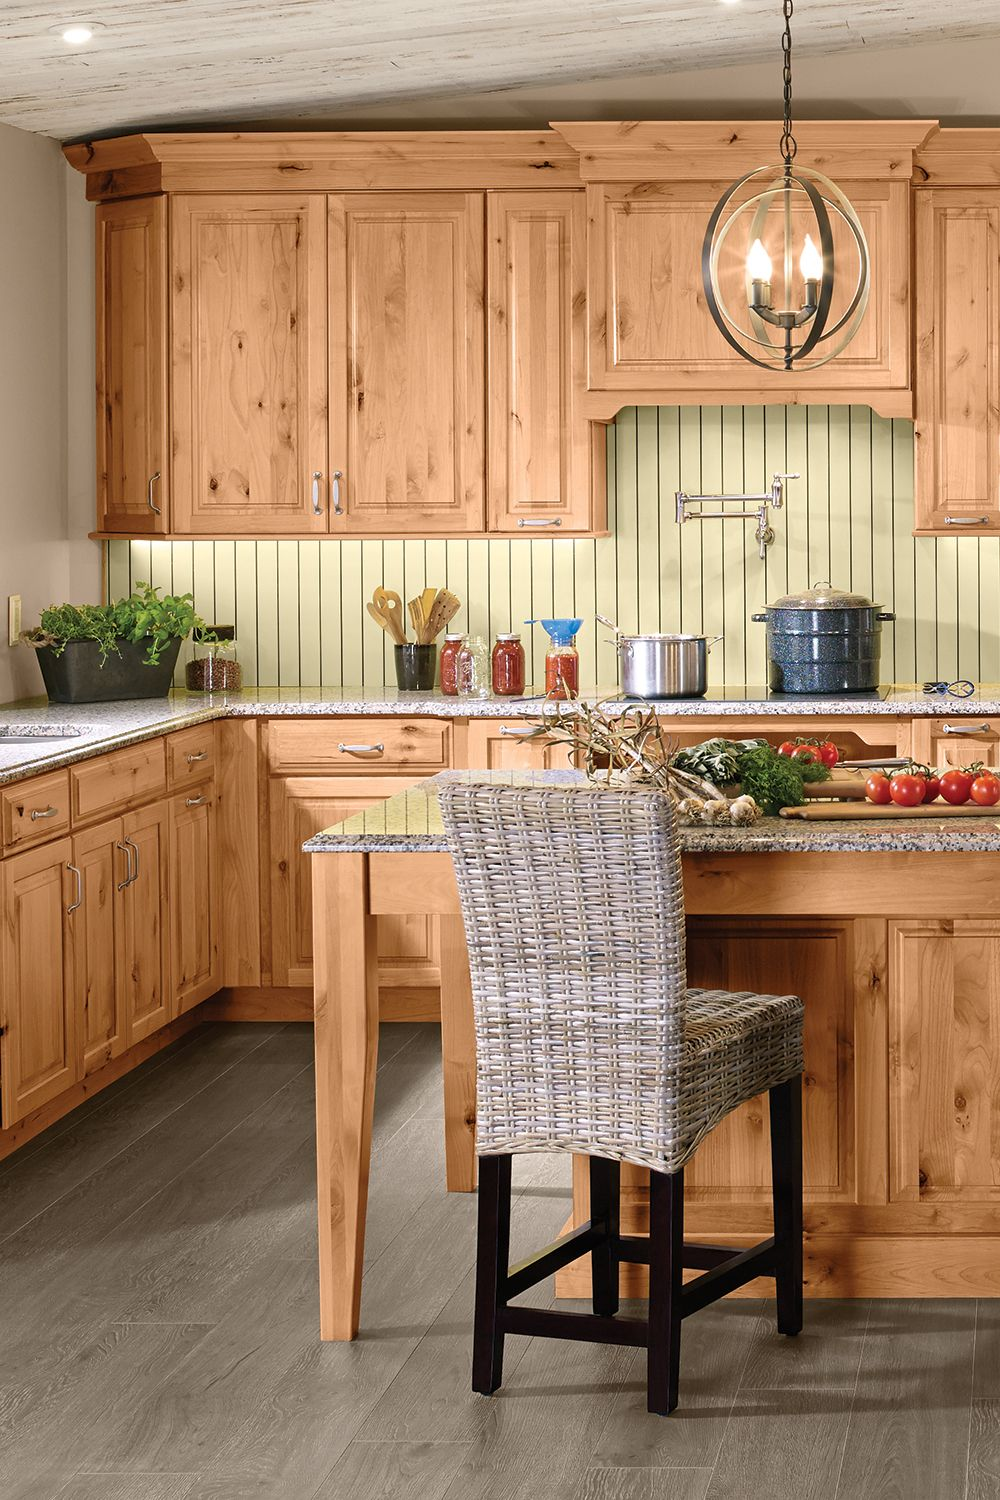 Home Cooking In 2020 Hickory Kitchen Cabinets Alder Kitchen Cabinets Natural Wood Kitchen Cabinets